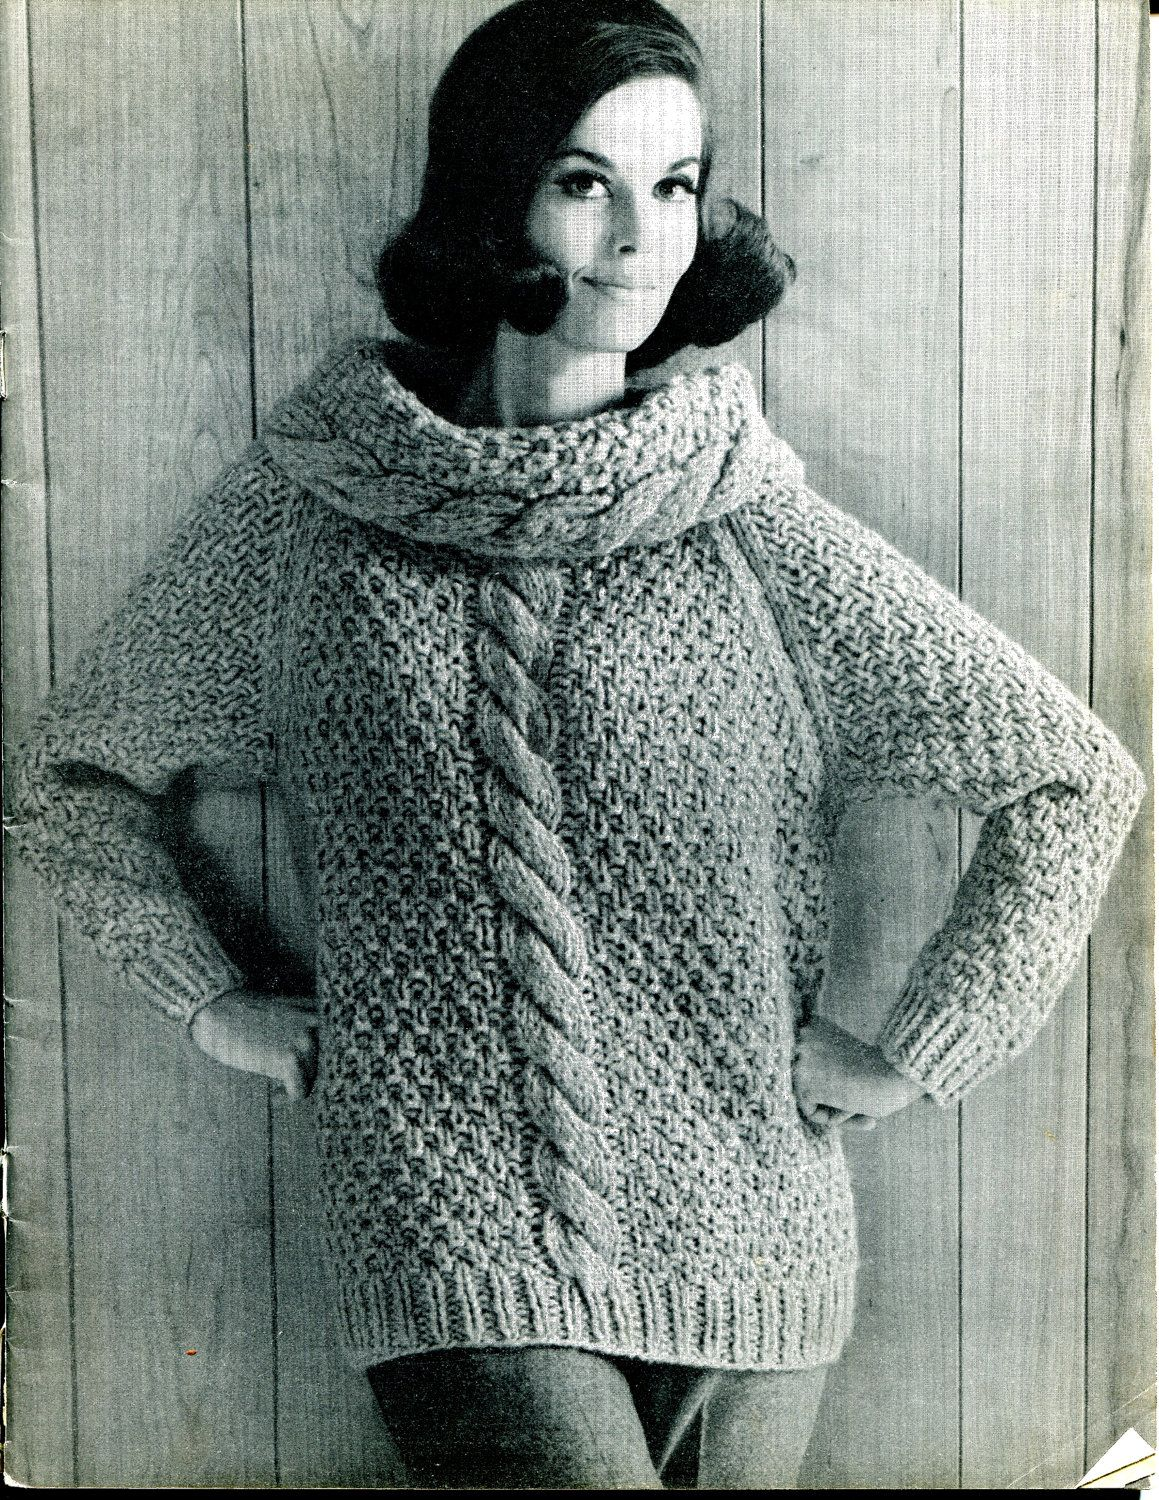 1967 Vintage Women\'s Cowl Chunky Cable Knit Sweater Knitting Pattern ...